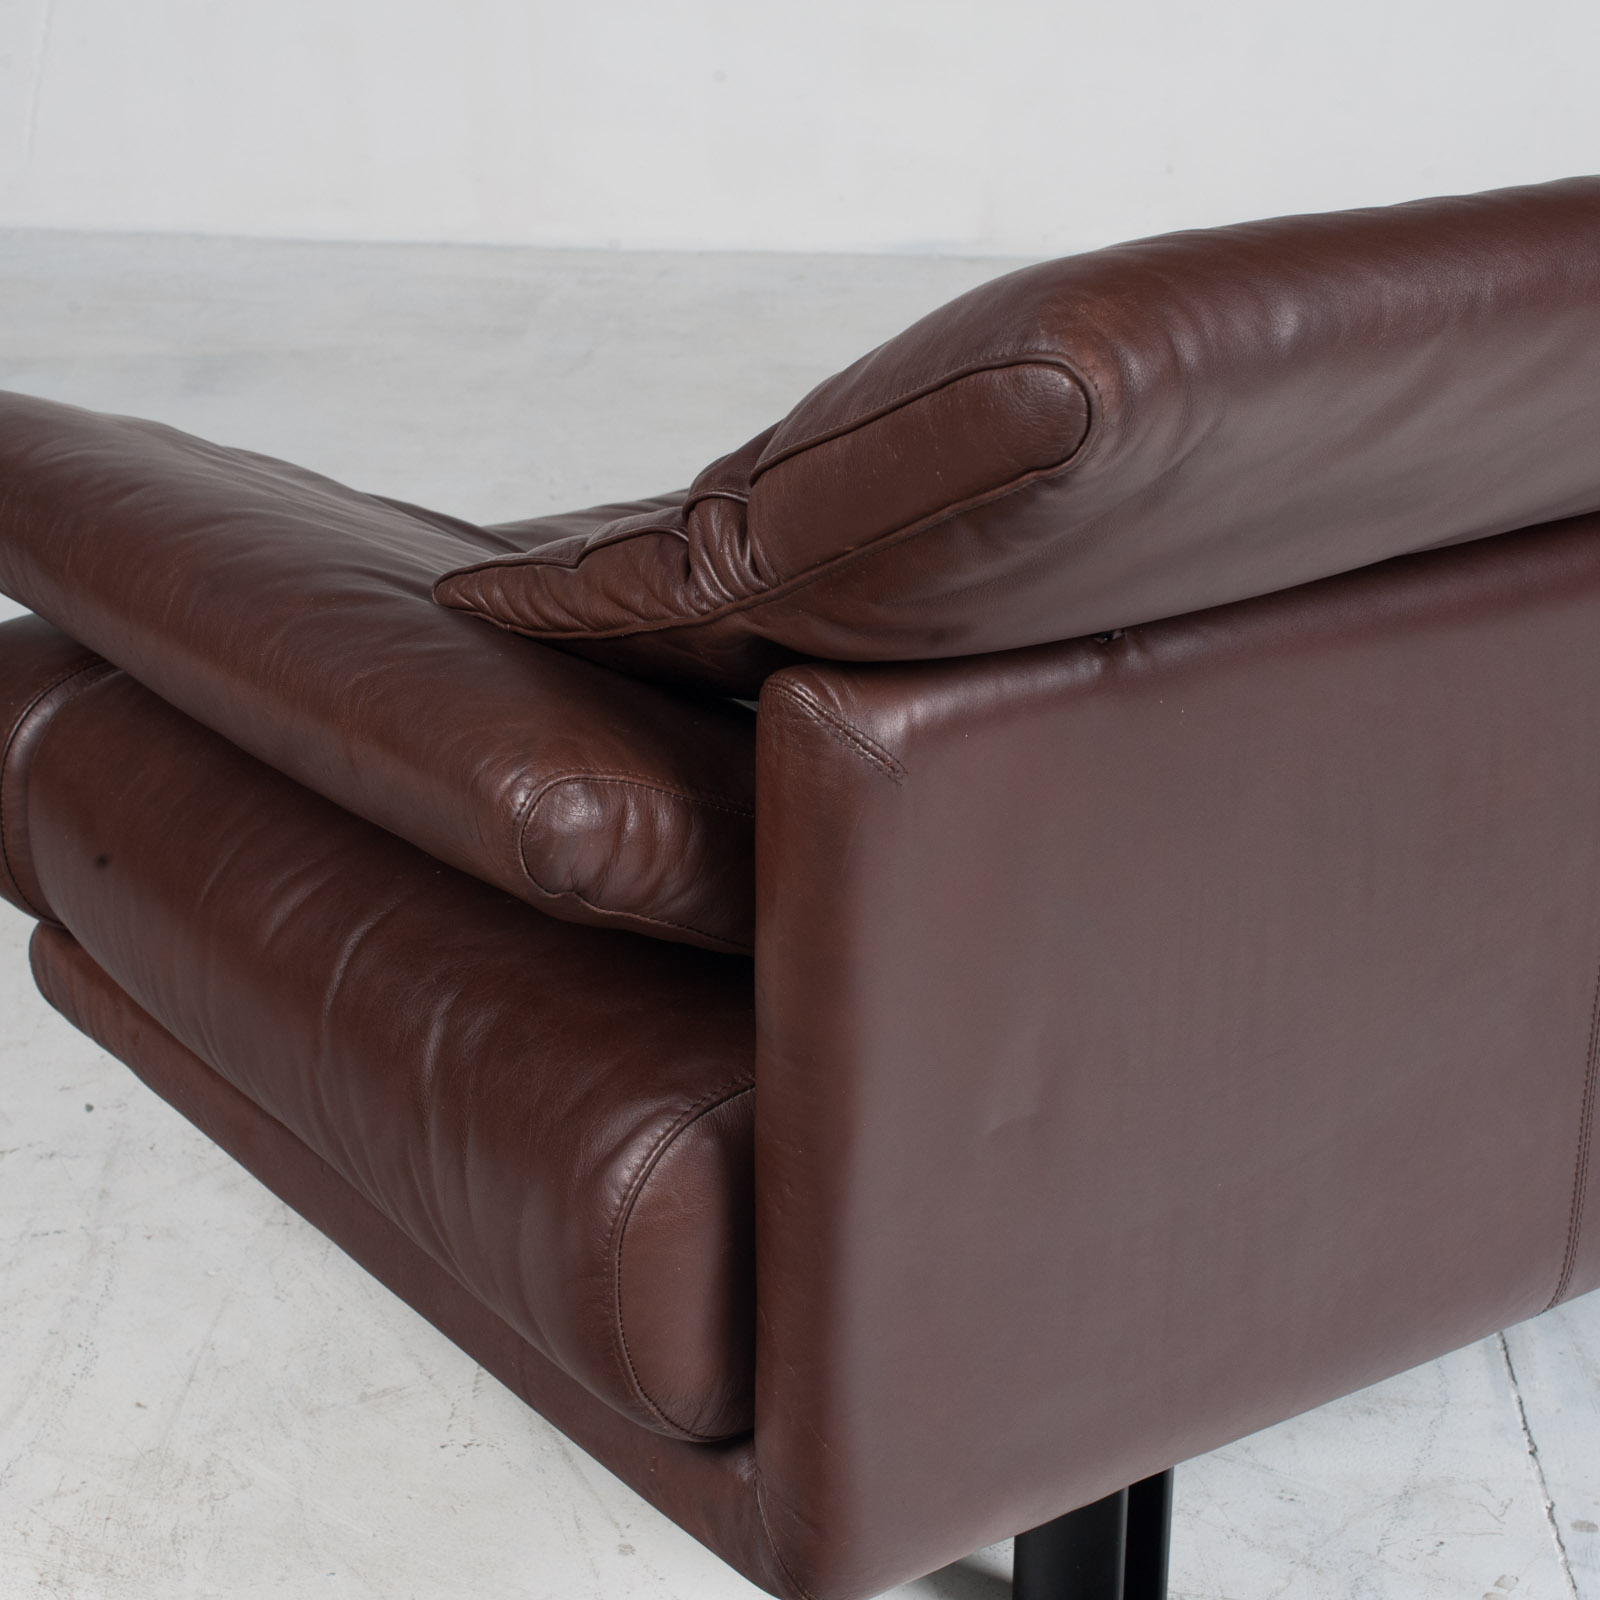 Alanda Sofa By Paolo Piva For B&b Italia In Burgundy Leather 1980s Italy 19